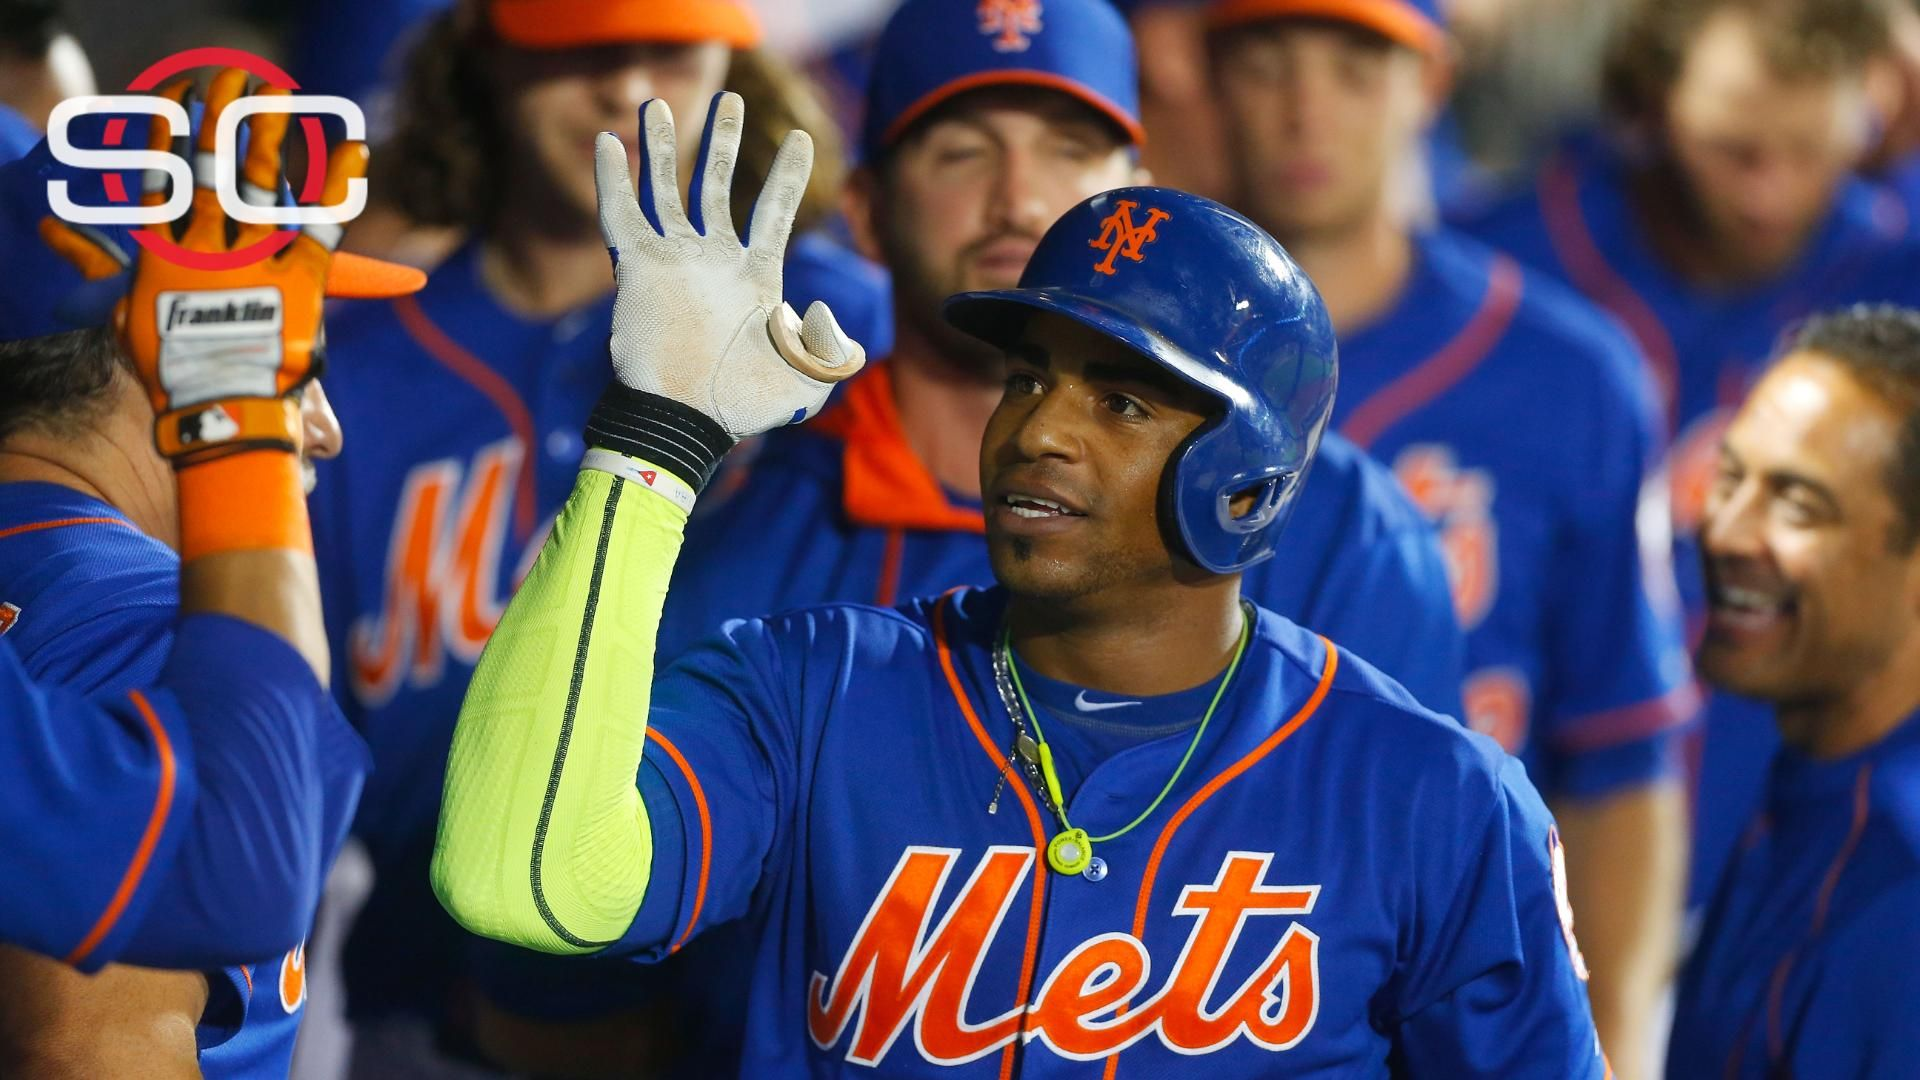 https://secure.espncdn.com/combiner/i?img=/media/motion/2015/0918/dm_150918_Cespedes_seeking_contract_of_at_least_6_years/dm_150918_Cespedes_seeking_contract_of_at_least_6_years.jpg